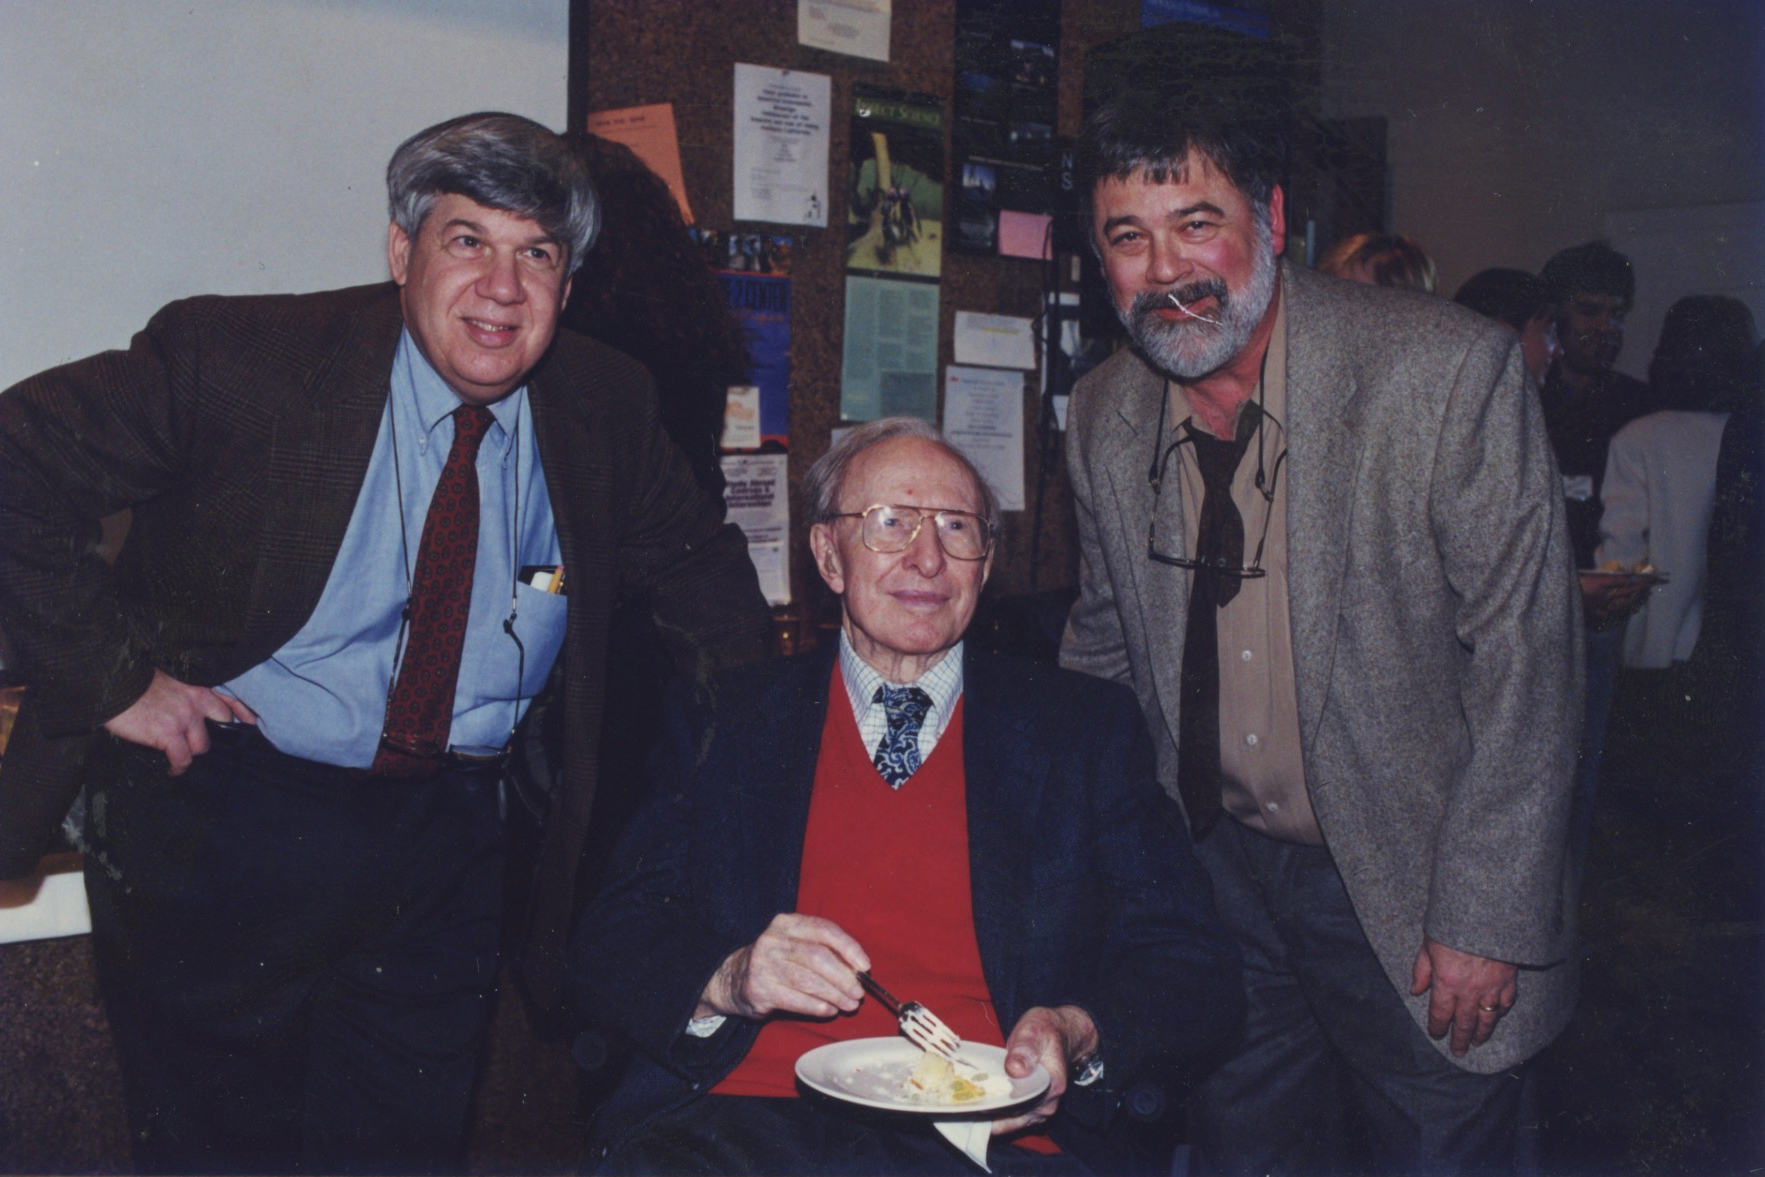 Left to right Stephen Jay Gould, Norman Newell, and Niles Eldredge at Norman's 90th birthday party in his former office/lab in 1999 (image courtesy of Gillian Newell).